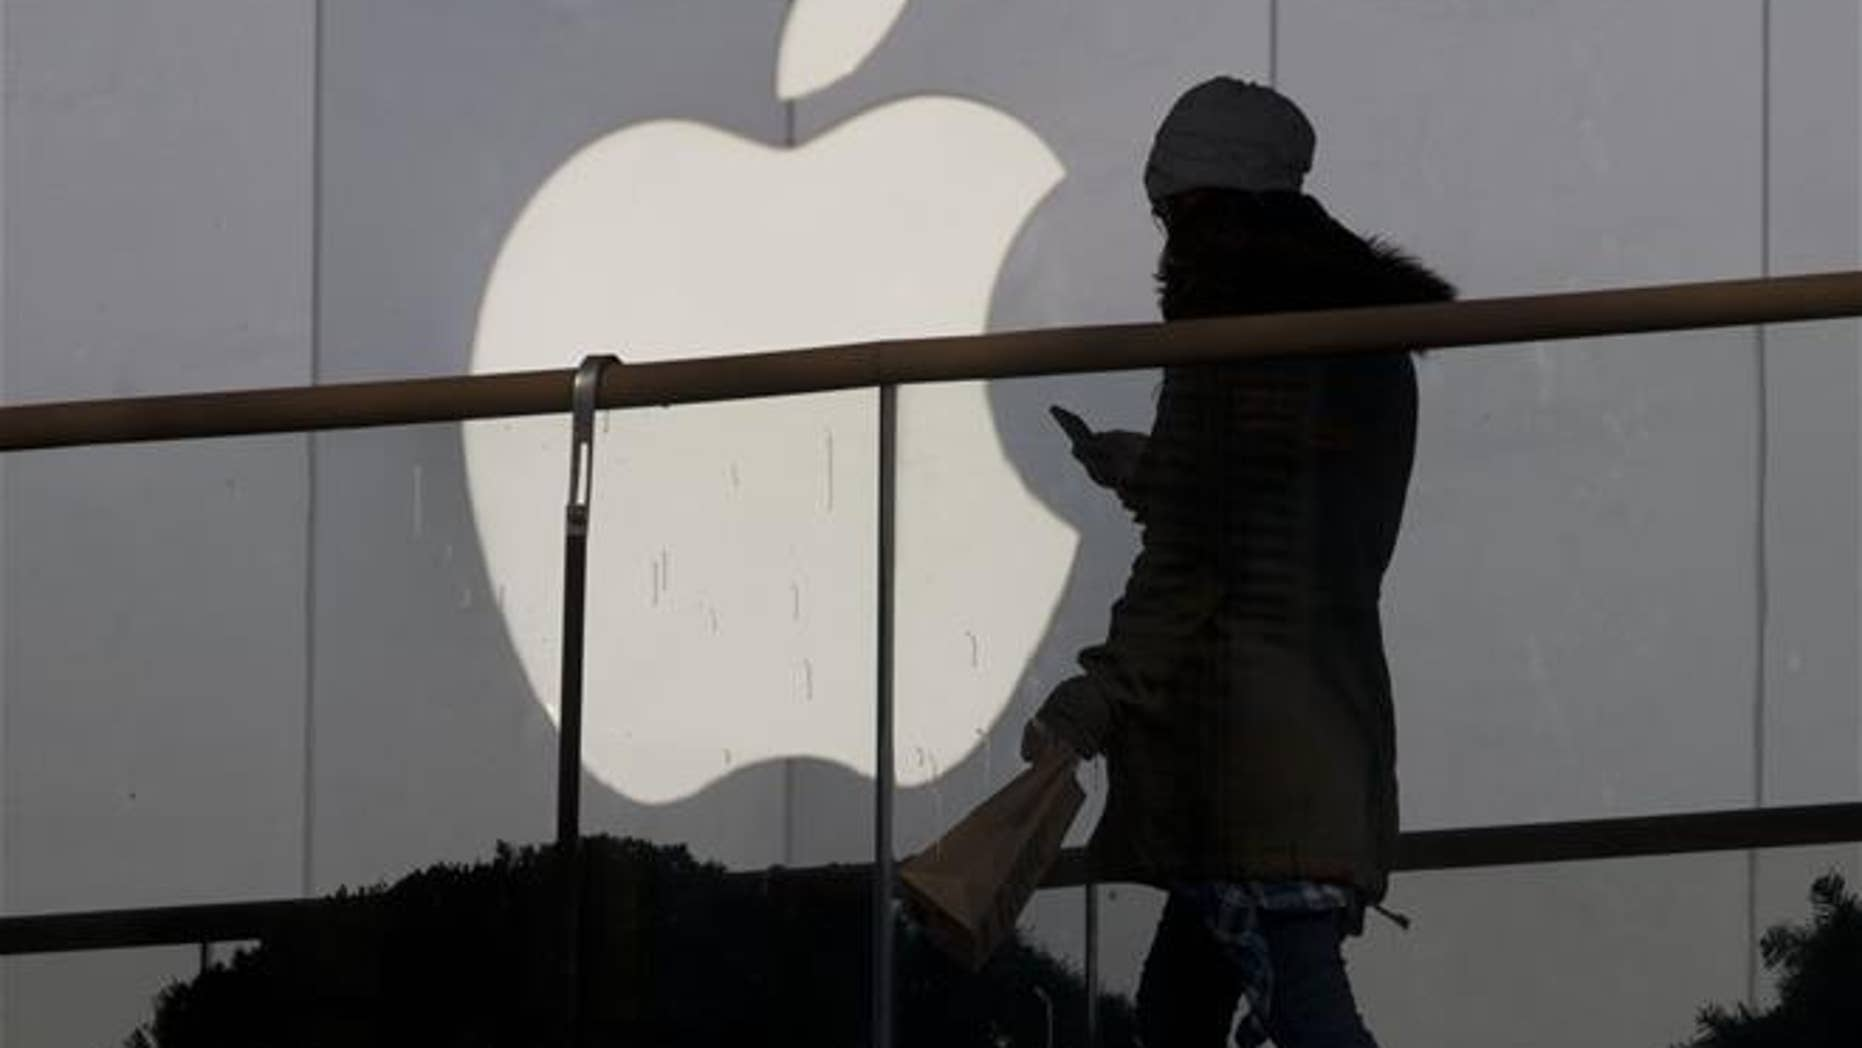 A woman walks past an Apple store in Beijing in this file photo. In dozens of leaked emails, women working at the company's headquarters in California complained of a sexism and gender harassment.